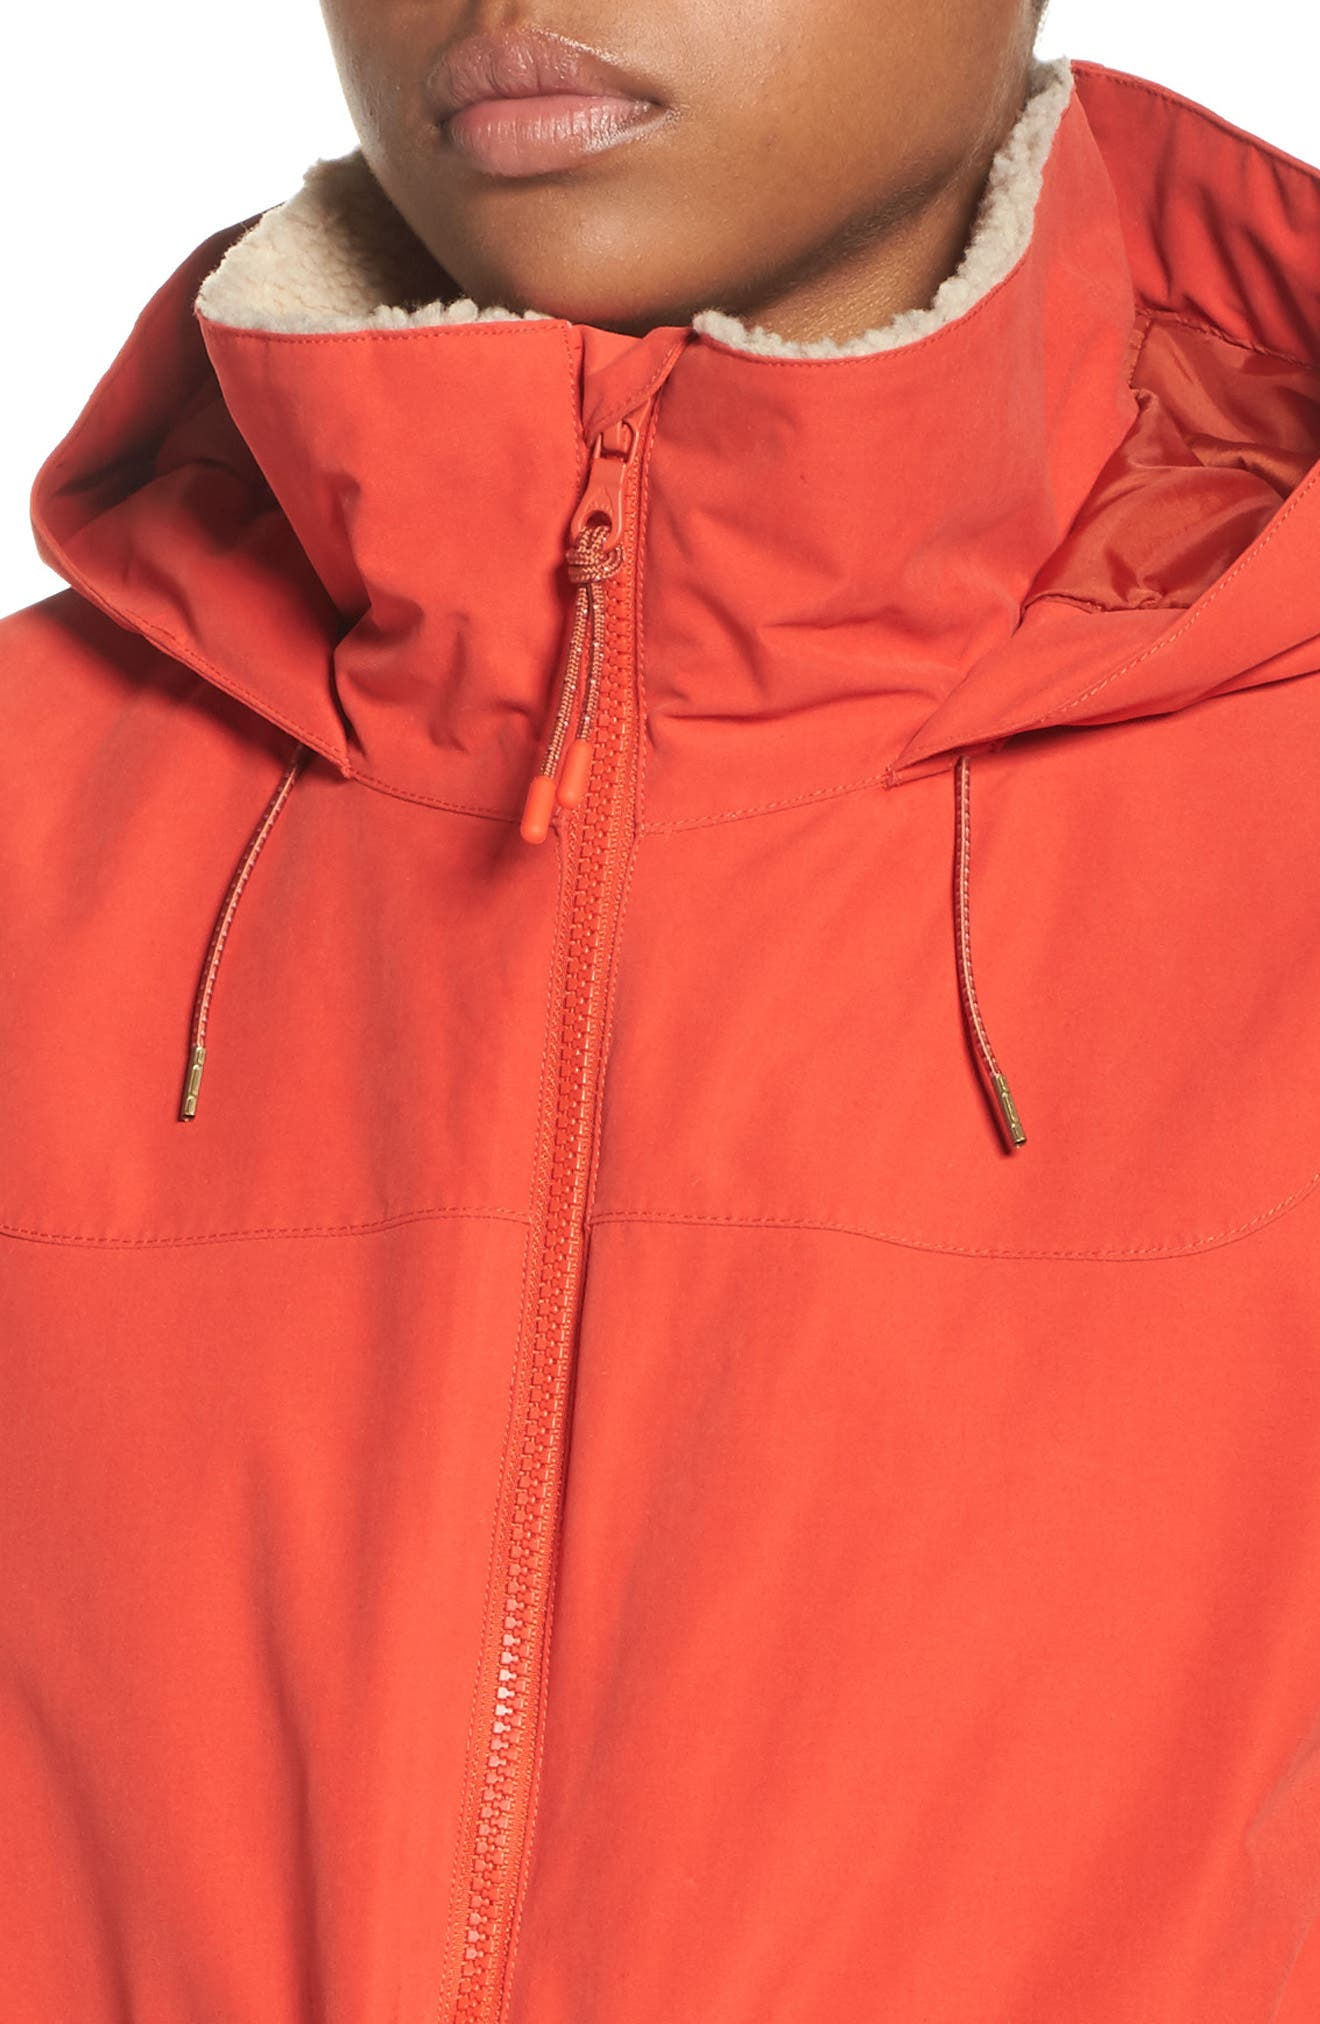 Prowess Fleece Lined Water Resistant Jacket,                             Alternate thumbnail 4, color,                             FIERY RED SUEDED